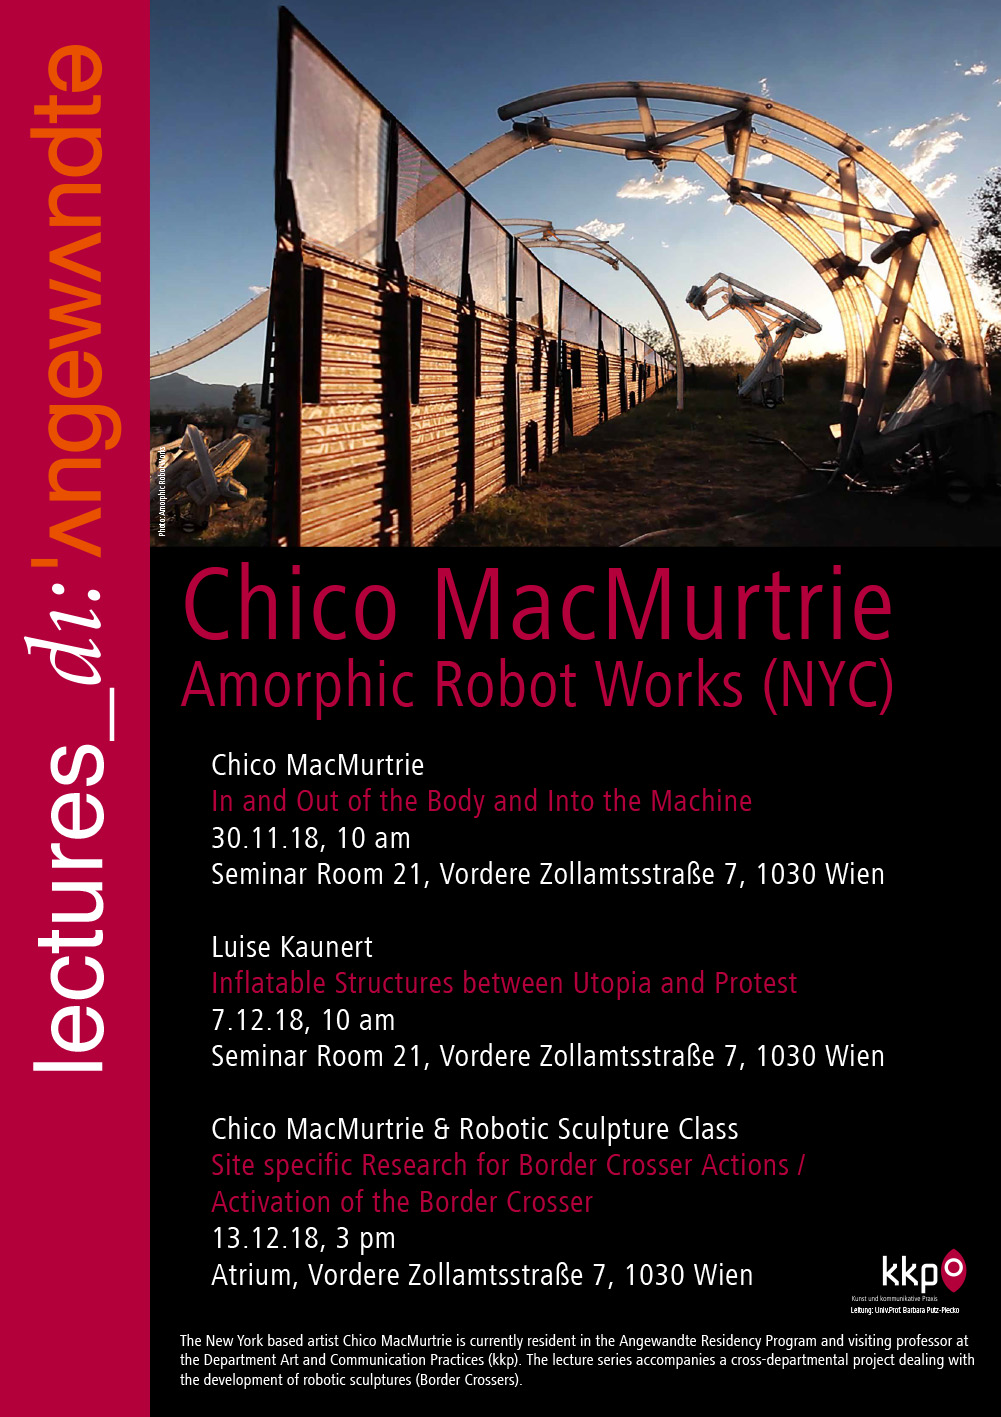 Chico MacMurtrie & Robotic Sculpture Class: Site specific Research for Border Crosser Actions